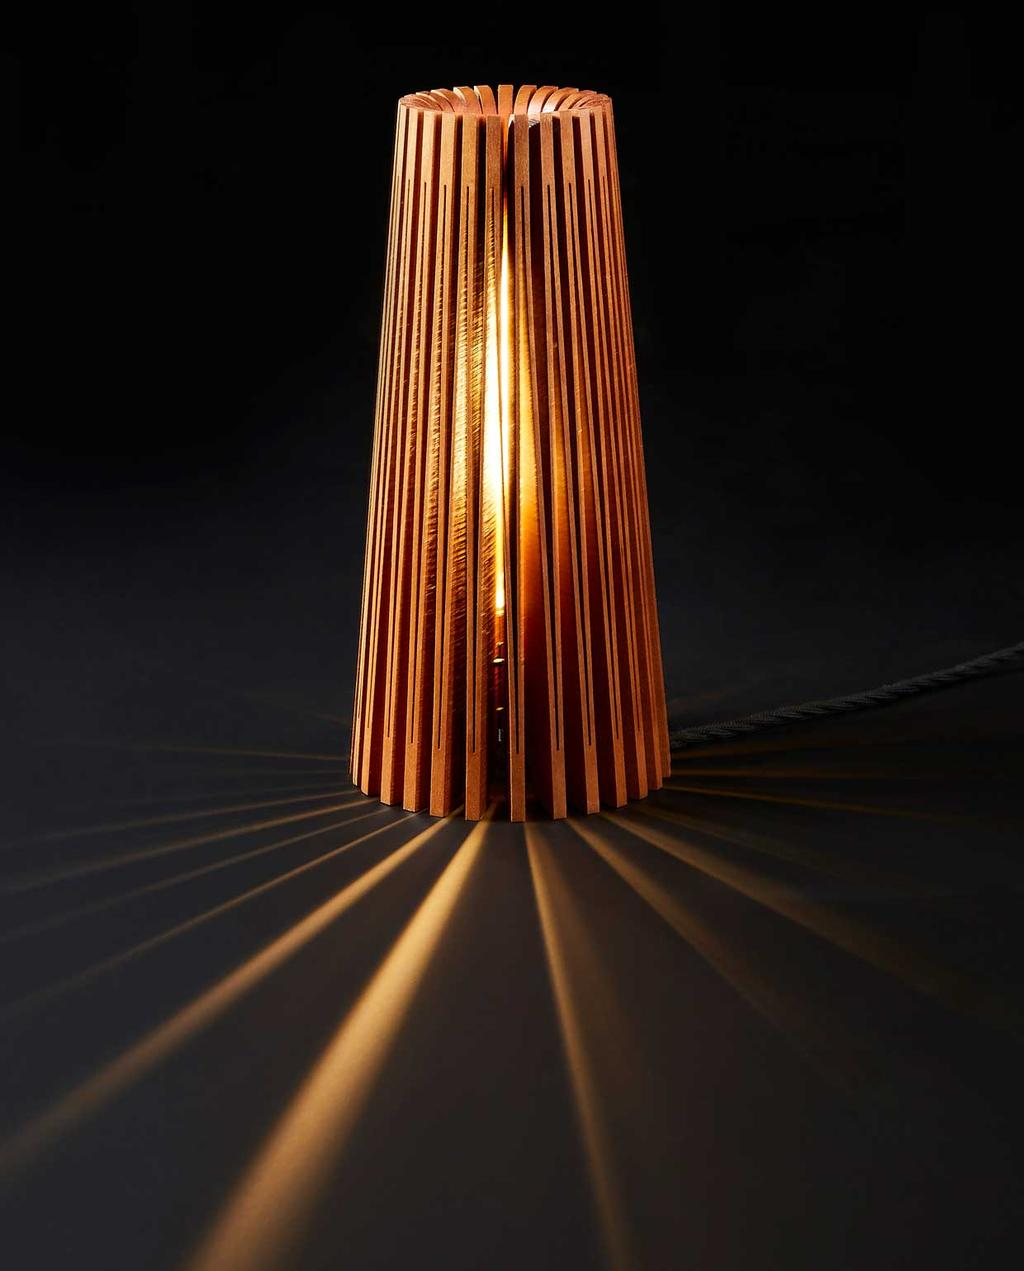 vtwonen | studentdesign | concertina-collectie | Huw Evans | schemerlamp van hout